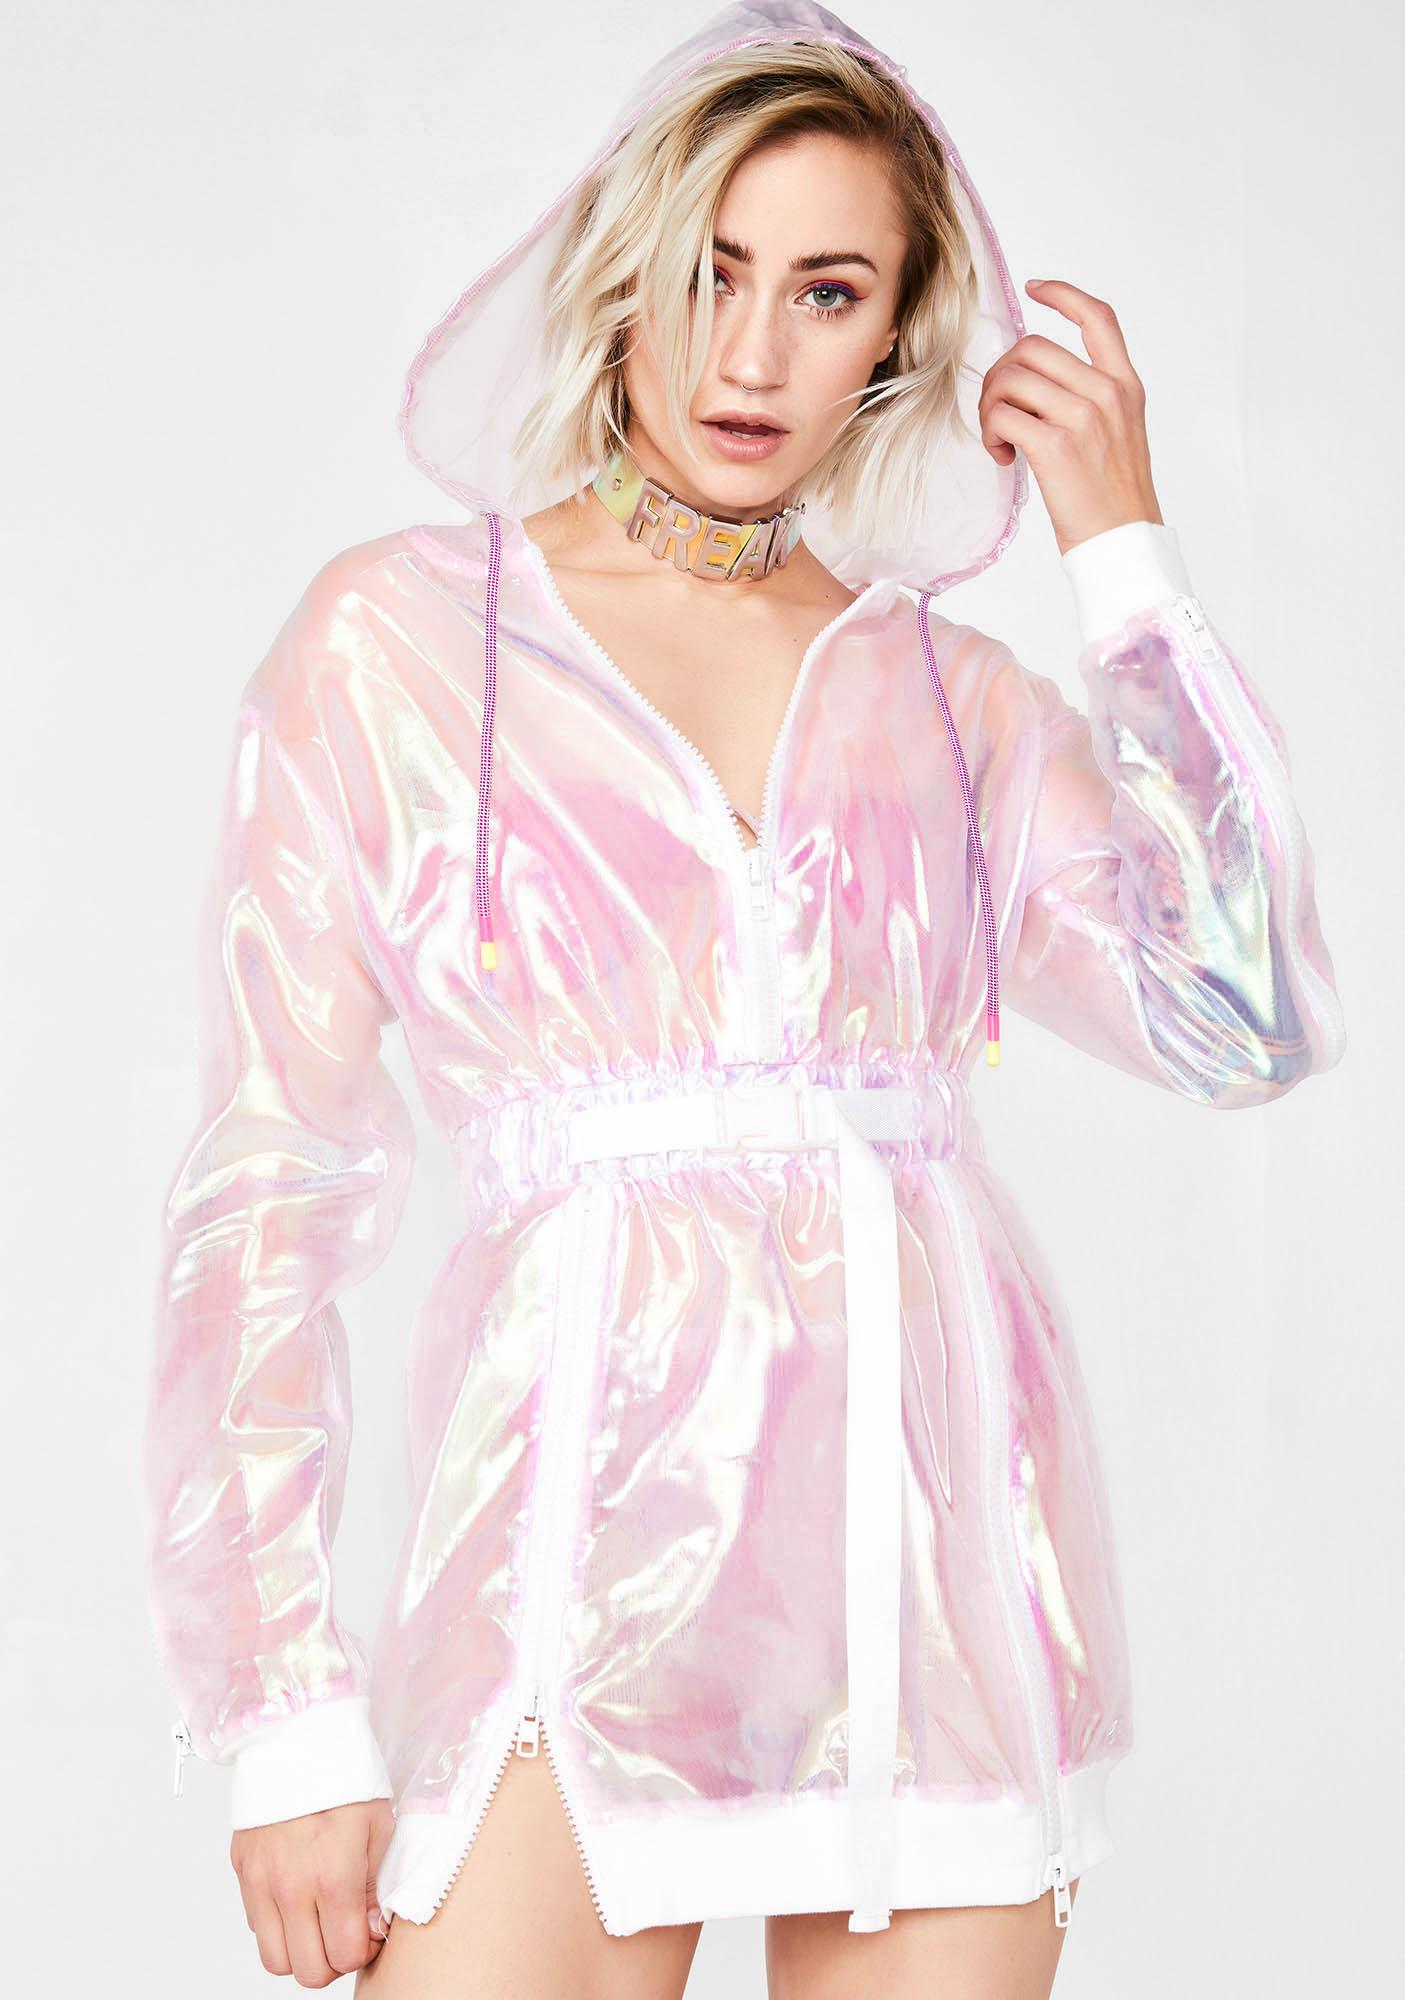 Pixie Potion Iridescent Dress